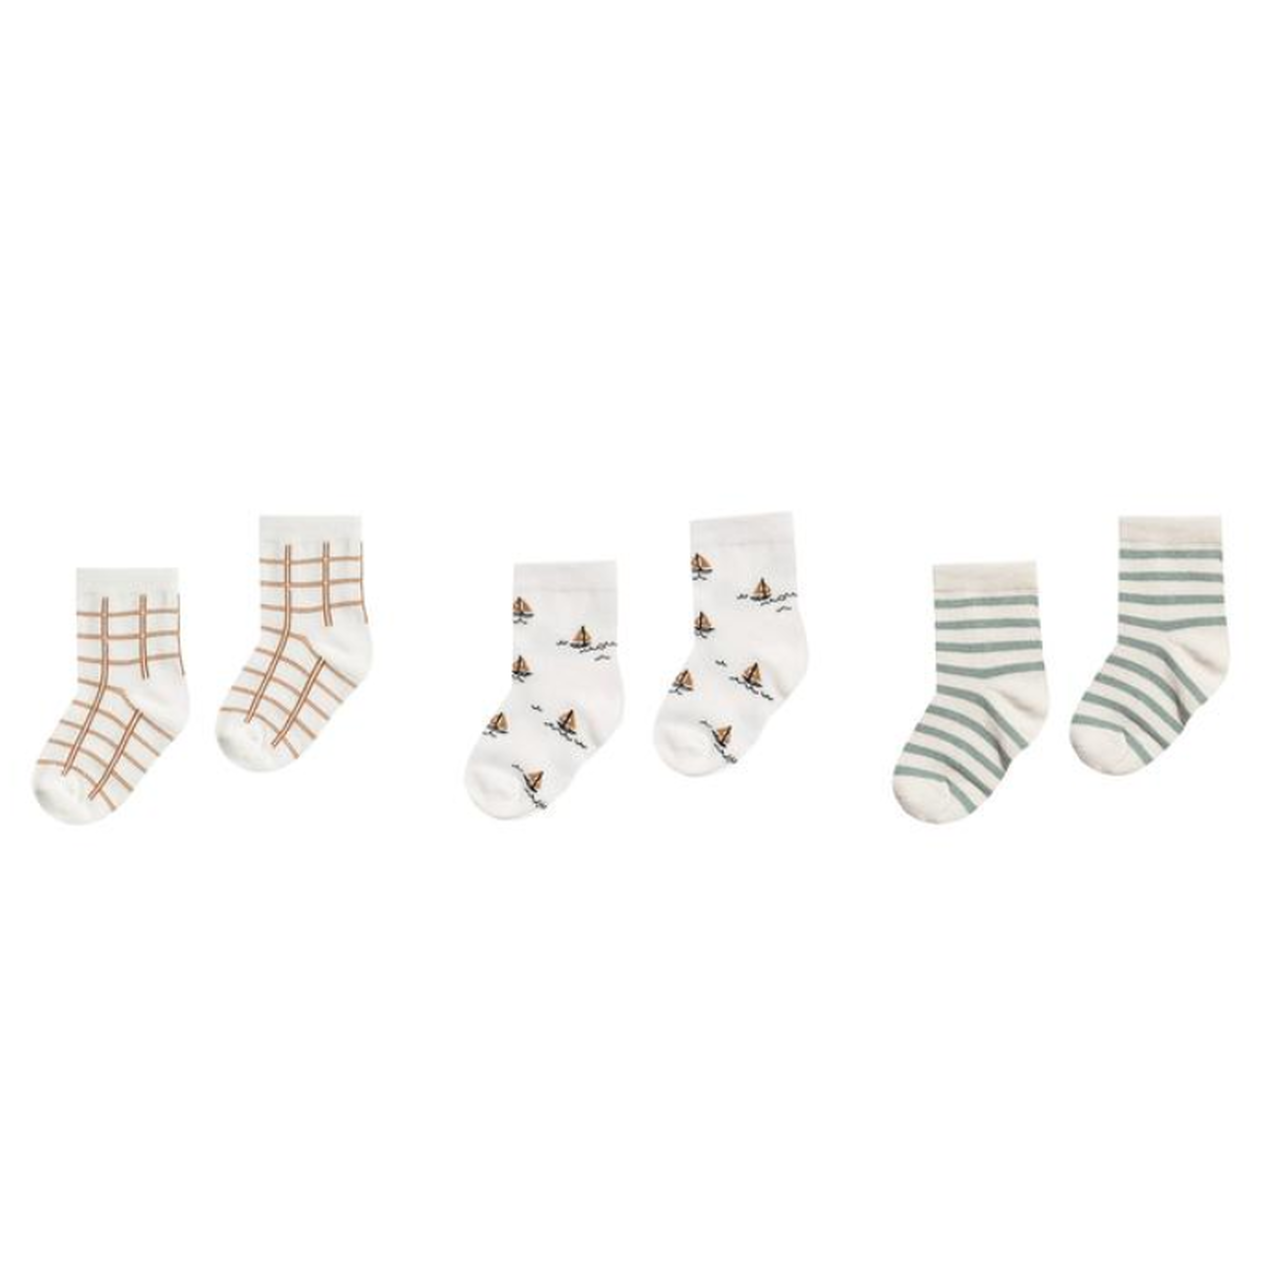 Rylee + Cru Ankle Sock Set - Bronze Grid/Sailboat/Sea Stripe